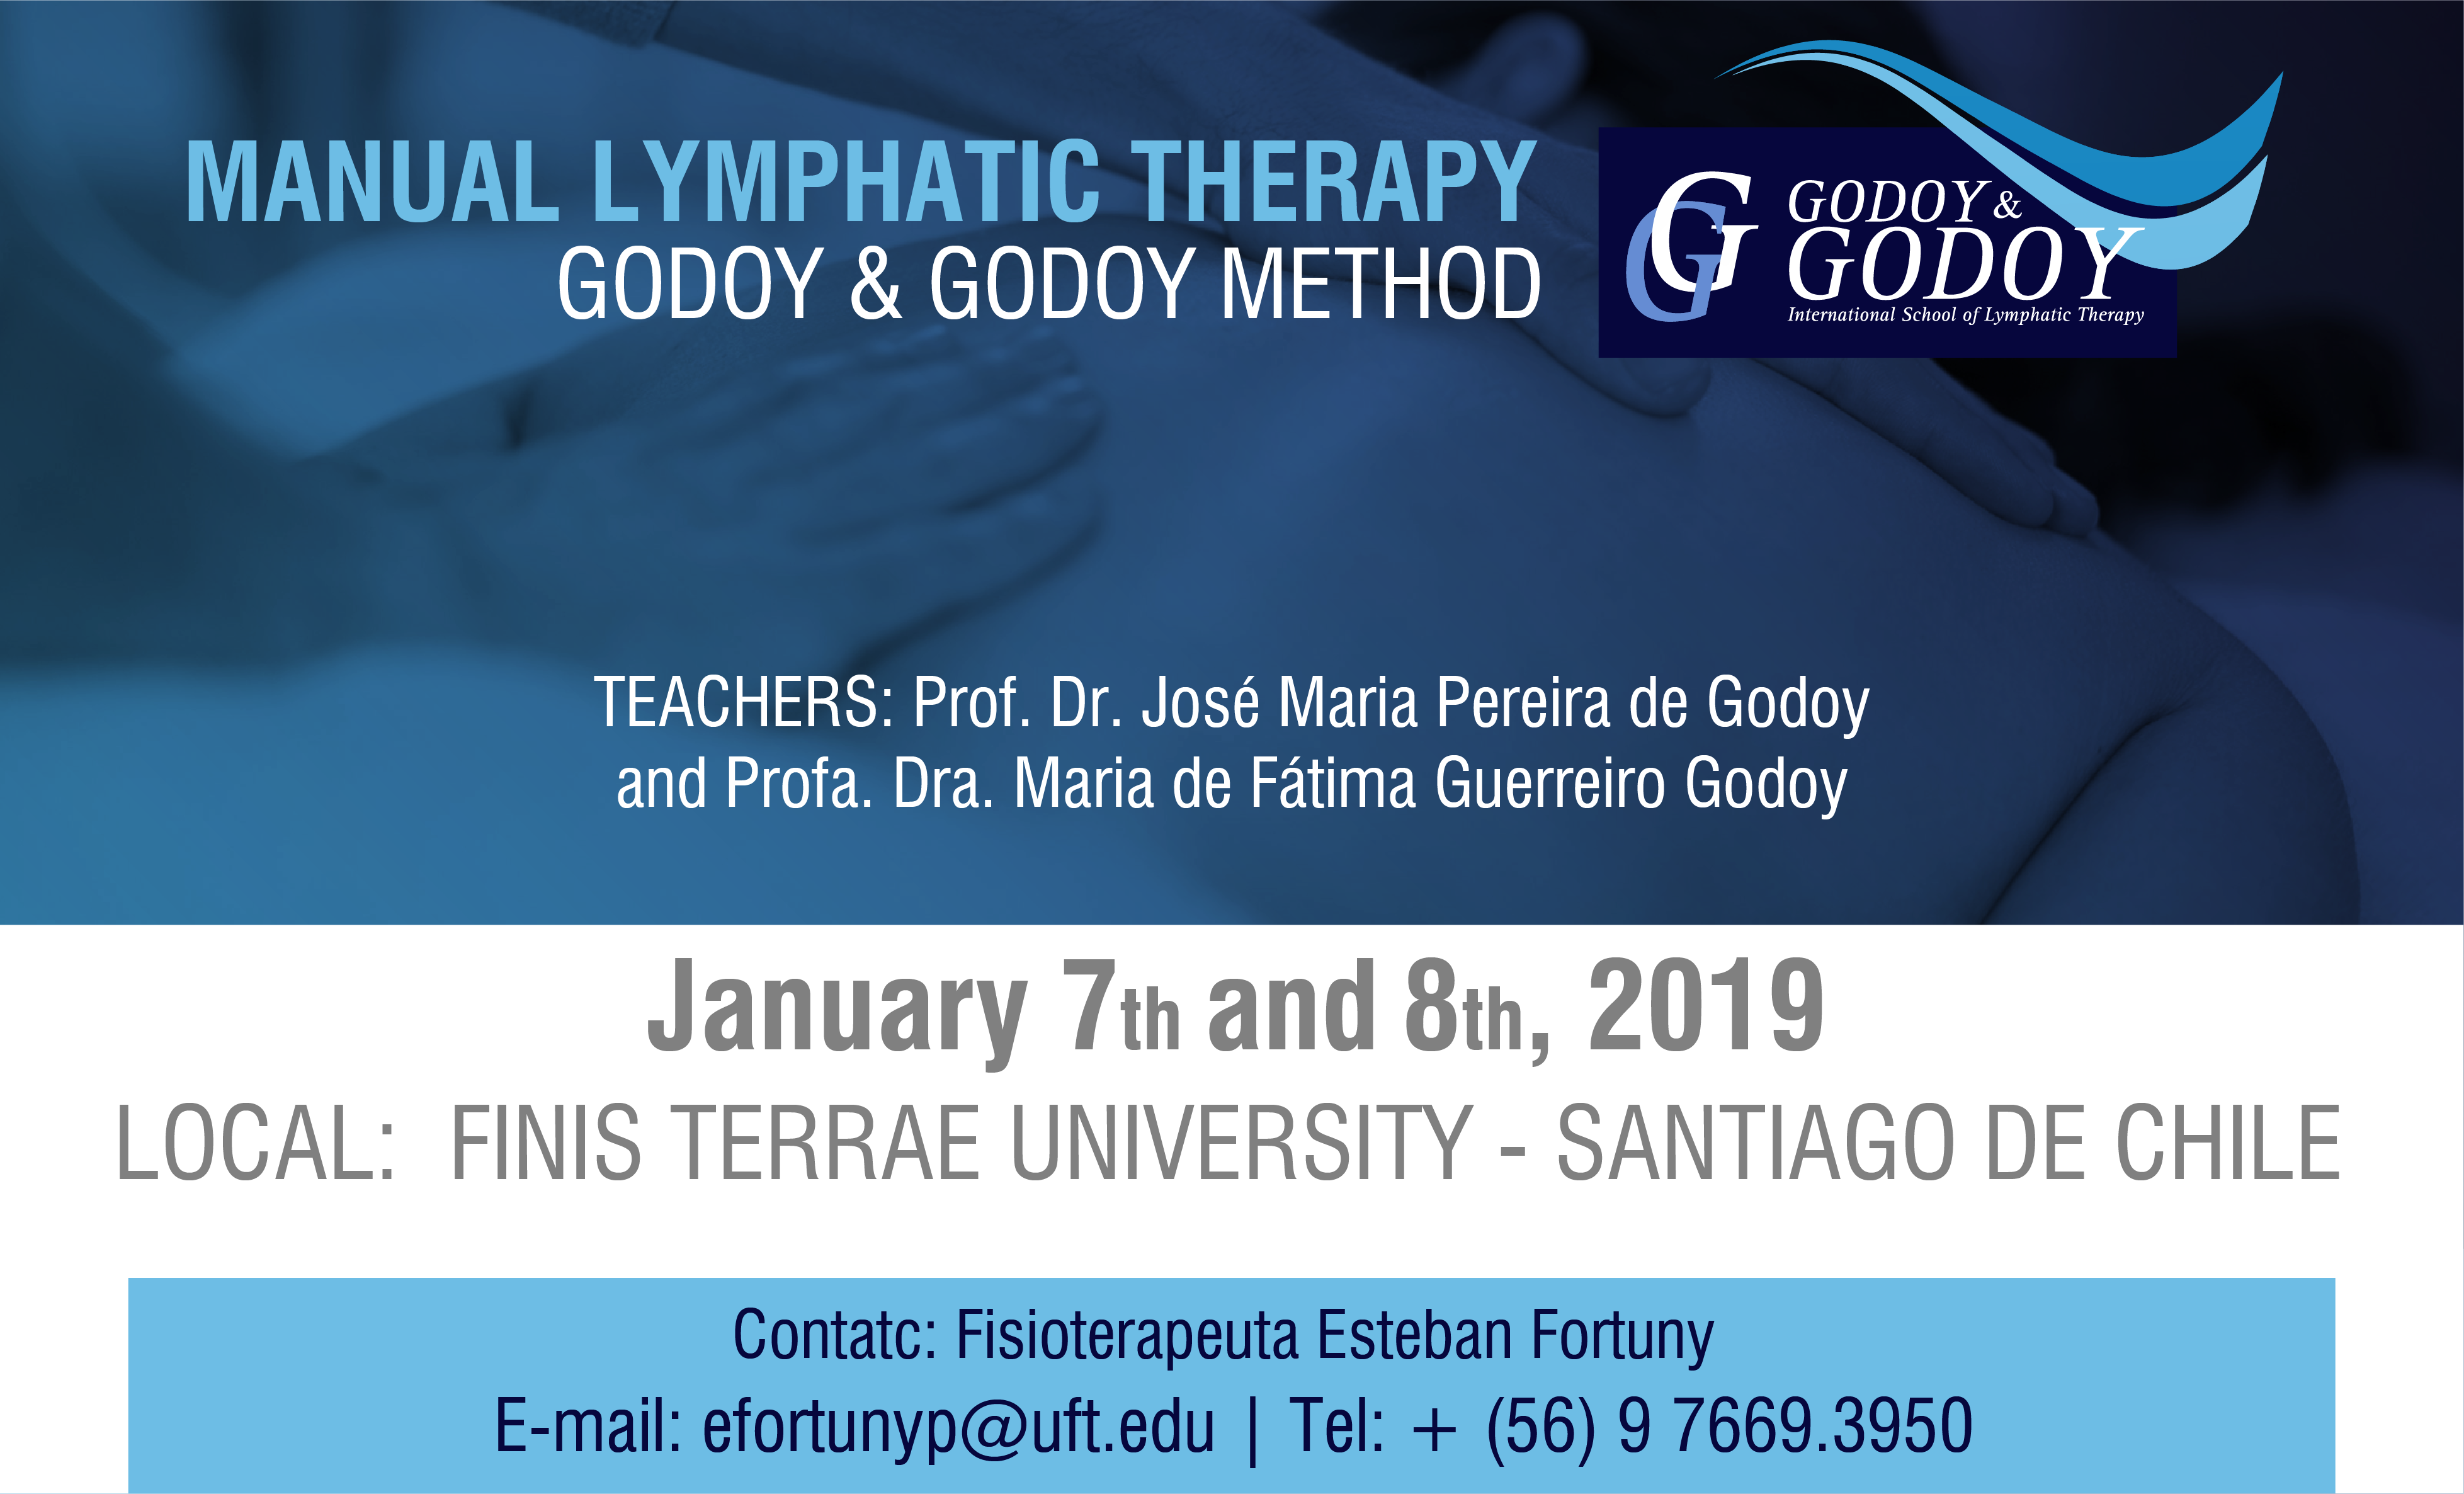 Manual Lymphatic Therapy